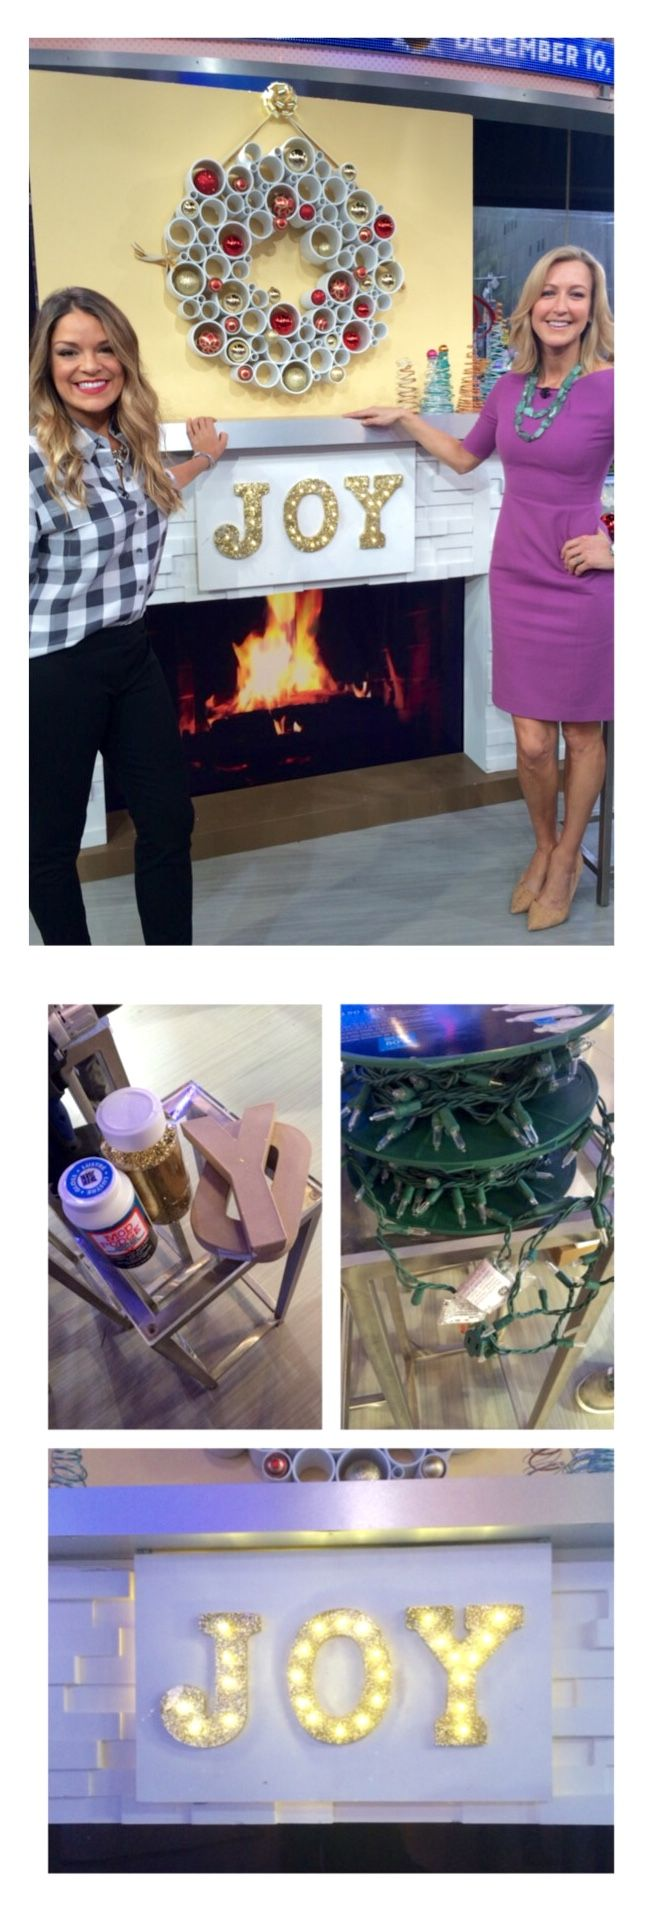 Oh Joy!  Sabrina Soto showed us this great DIY project on Good Morning America's Improve This - learn how to light up your holiday season with: http://abcn.ws/1scnsf2